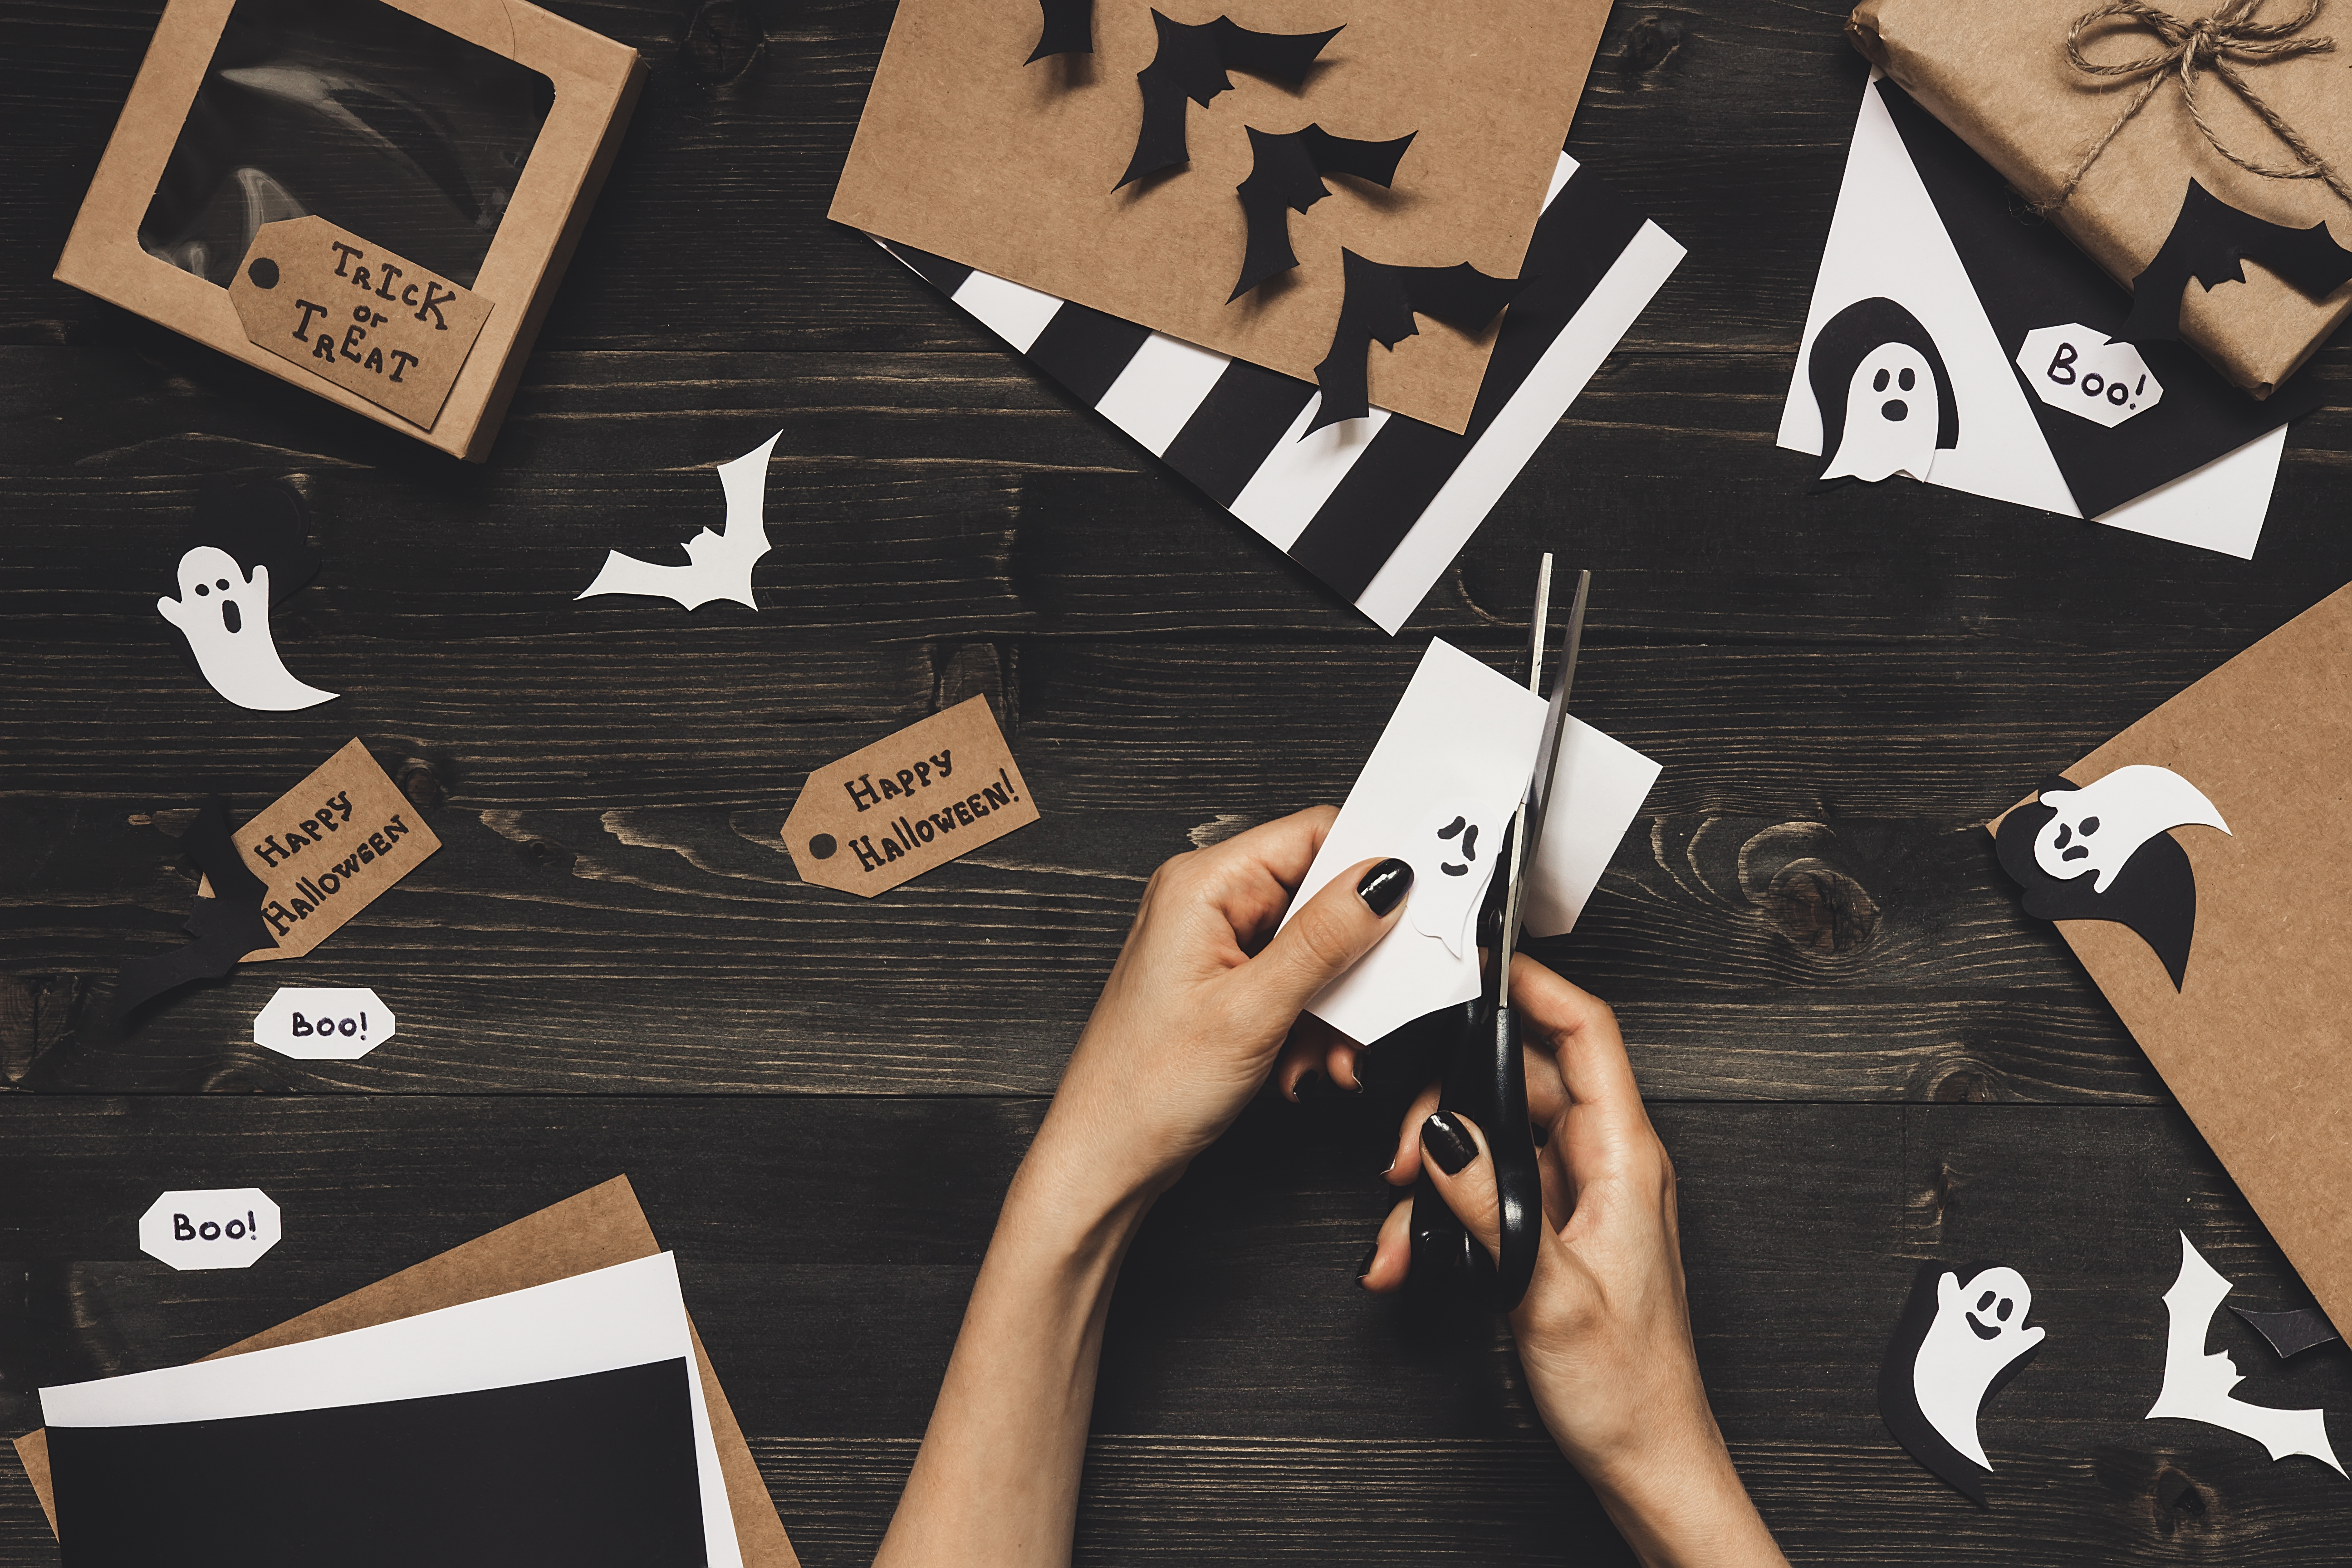 Halloween preparation. Hands making halloween cards and decoration using craft paper.